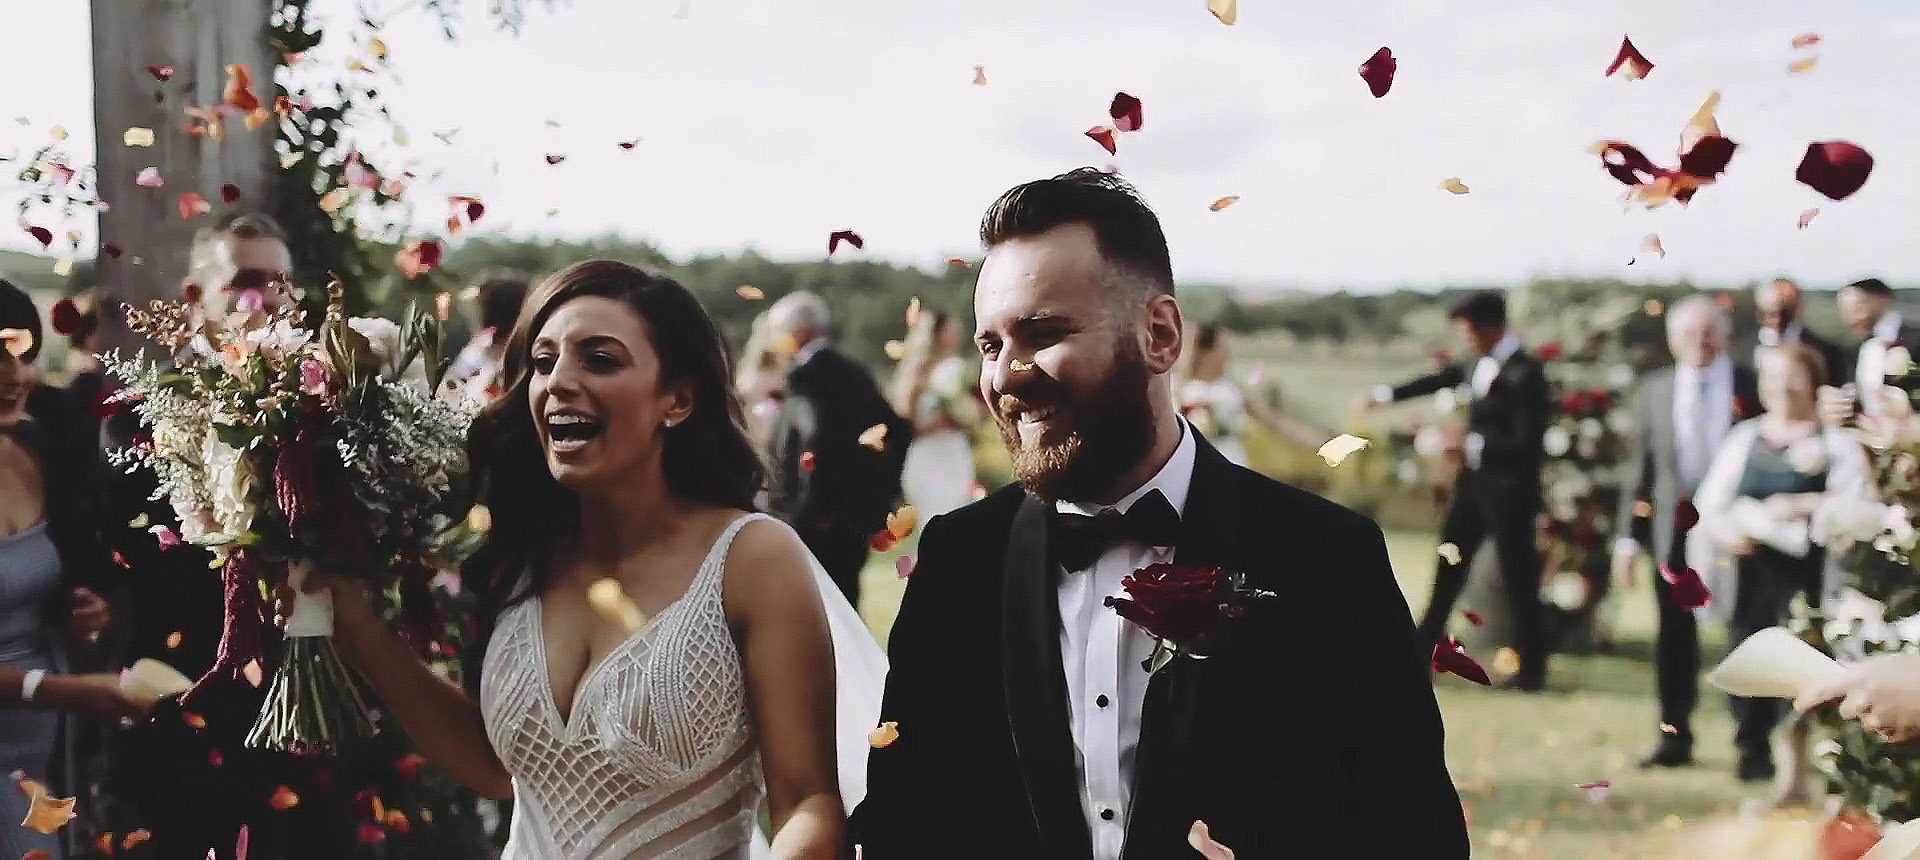 Annette-and-Dani-Films-Lisa and Rob5-wedding-video.jpg